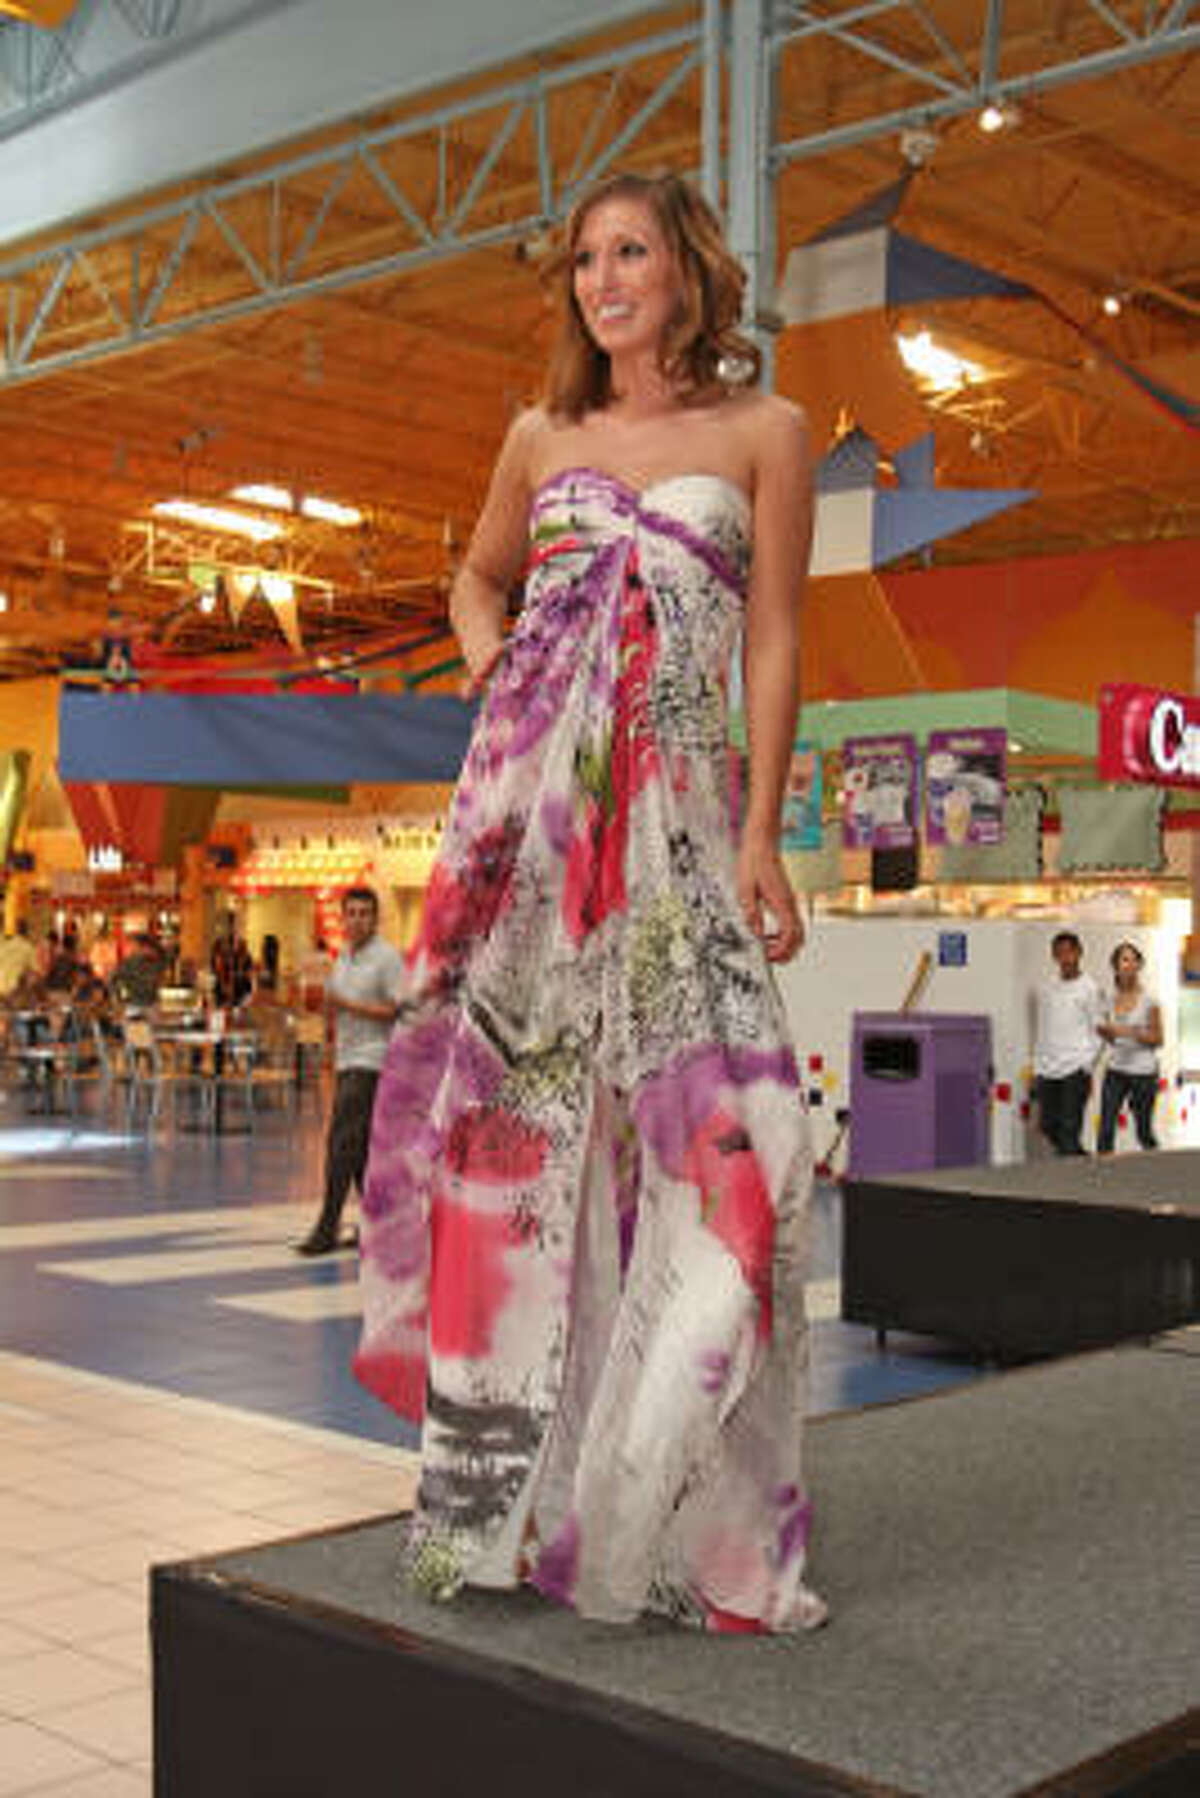 Katy Mills Mall hosted the 2009 Prom Preview.